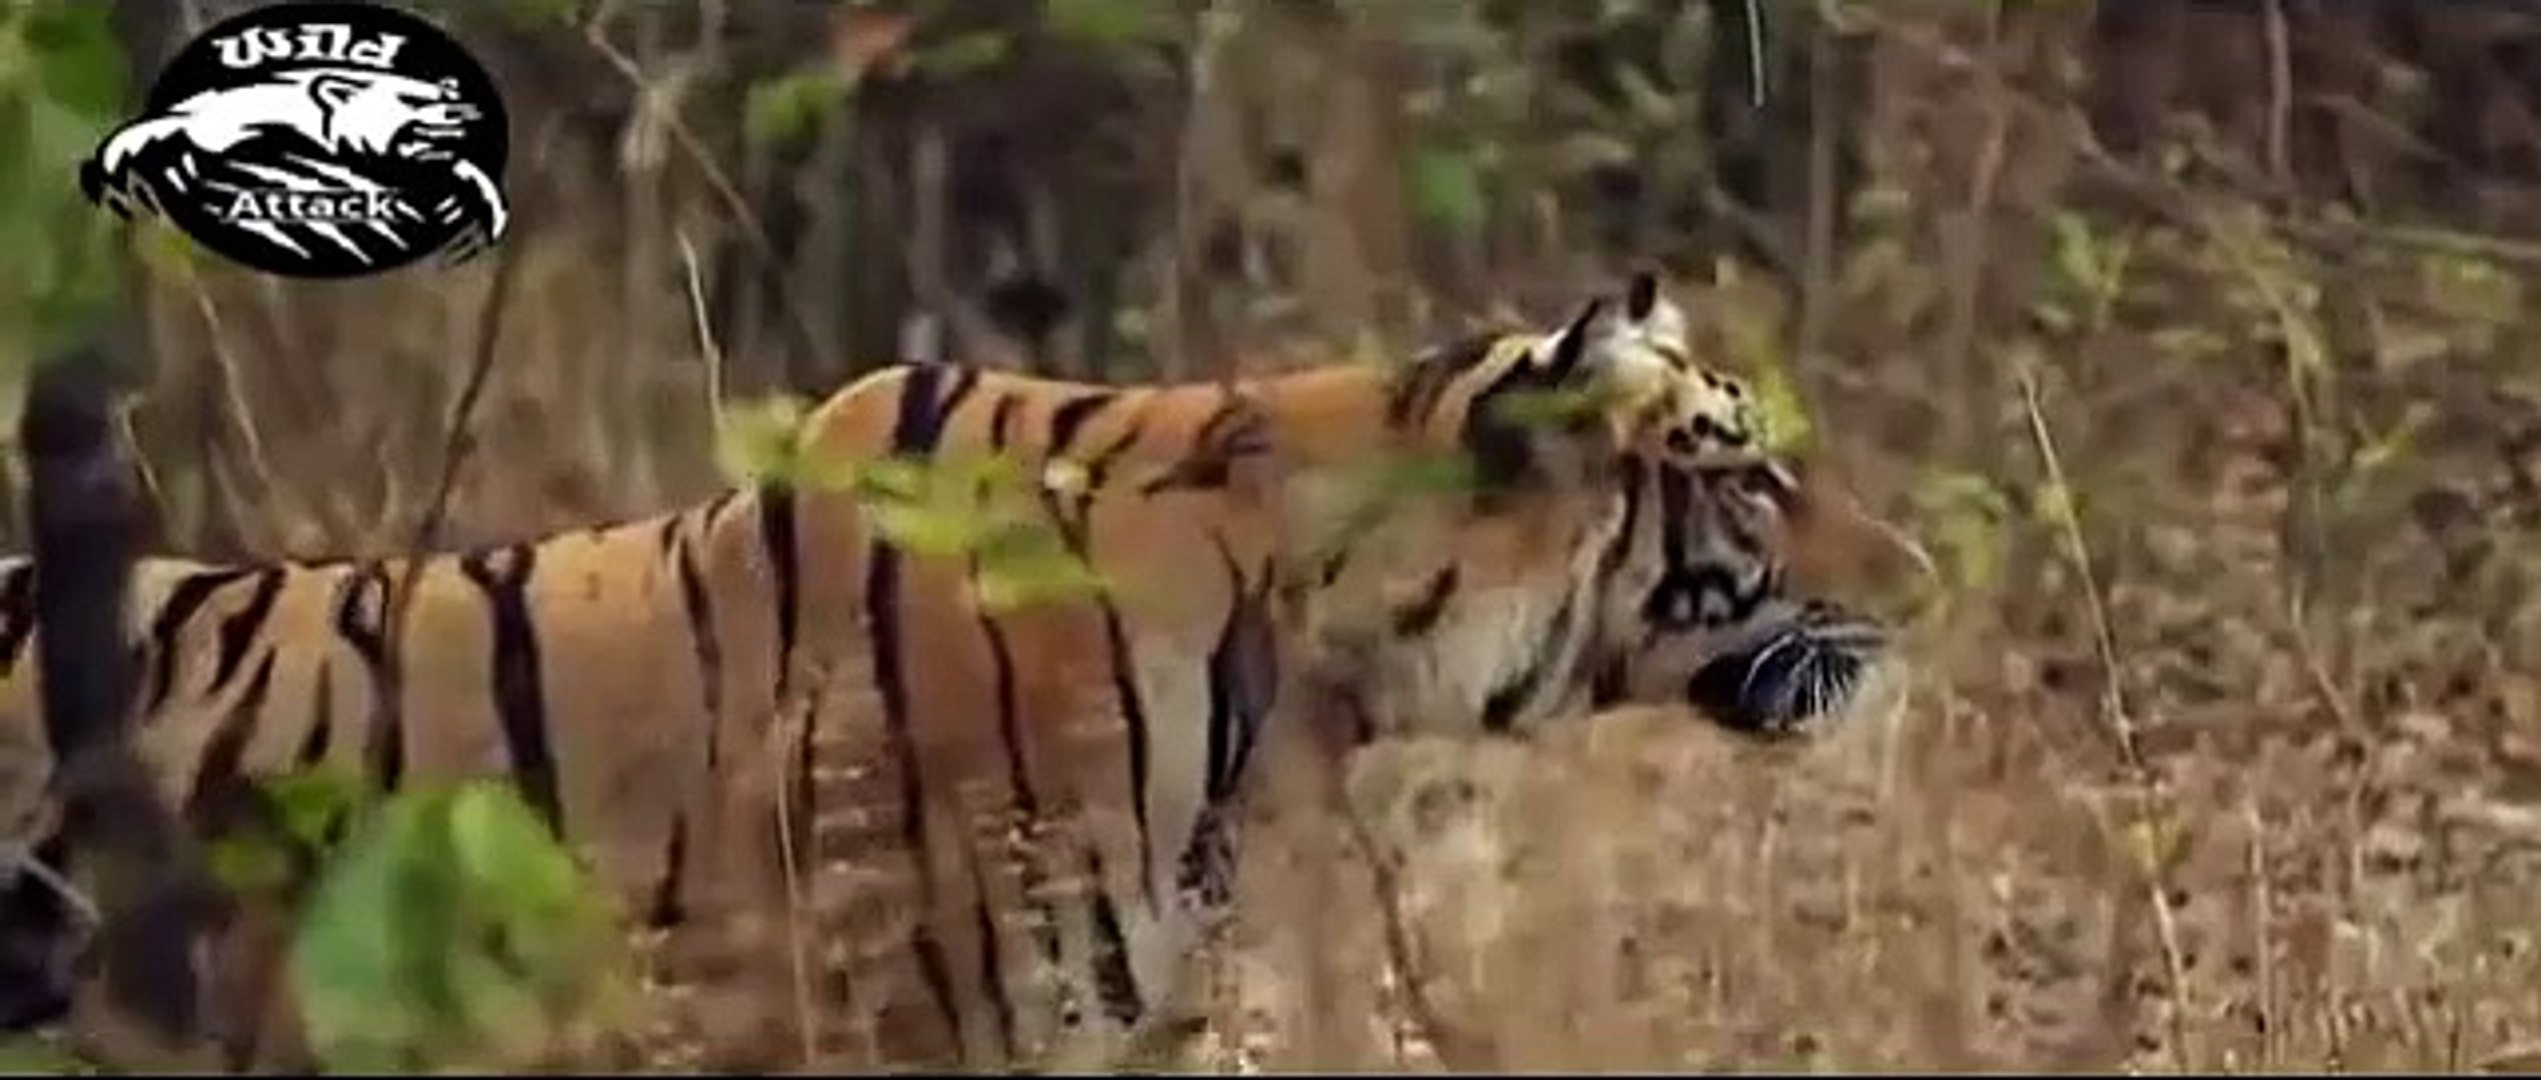 National Geographic Documentary Wild Animals attack National Geographic Animals ✔ ► P.40